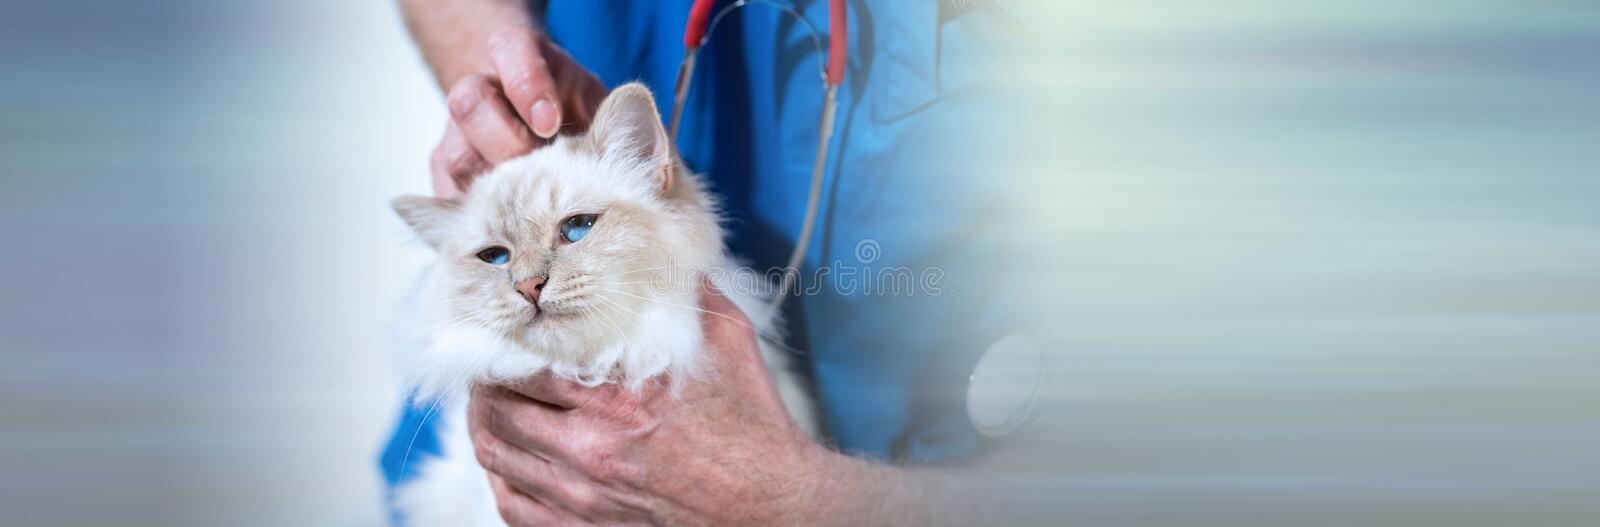 Veterinarian examining a sacred cat of burma. panoramic banner. Veterinarian examining a white sacred cat of burma. panoramic banner royalty free stock images